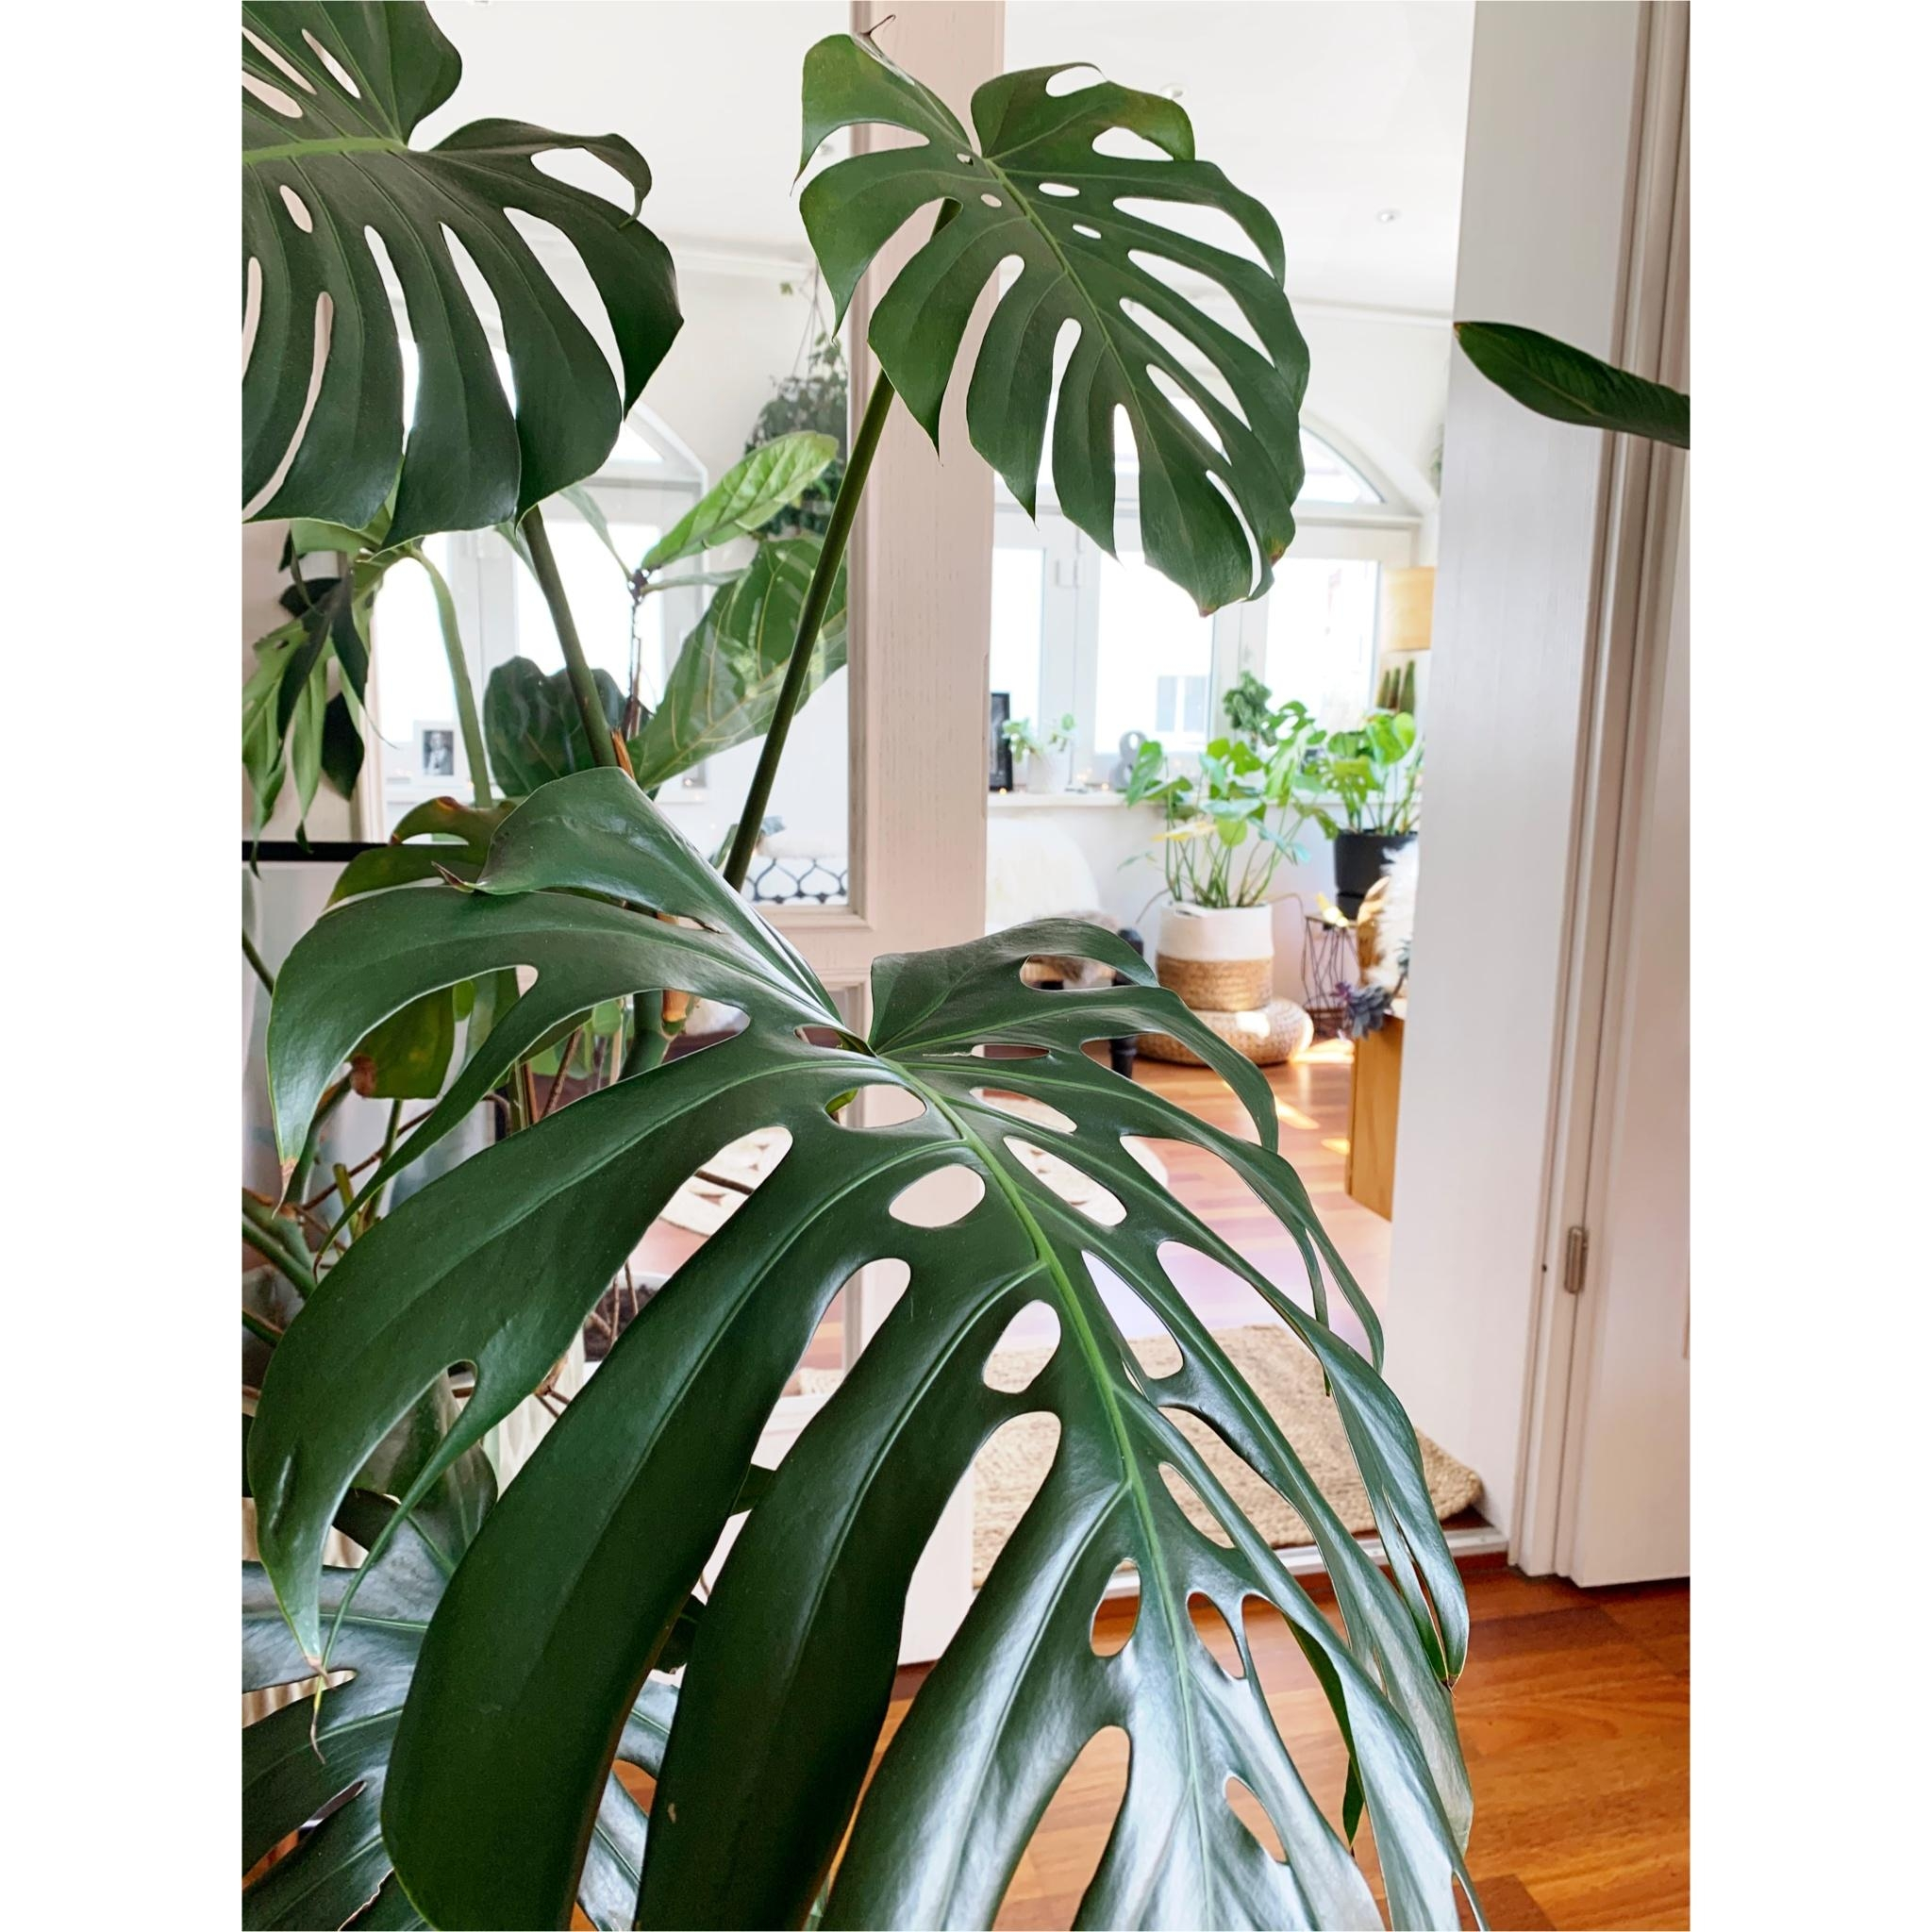 Monstera 💚#urbanjungle #pflanzen